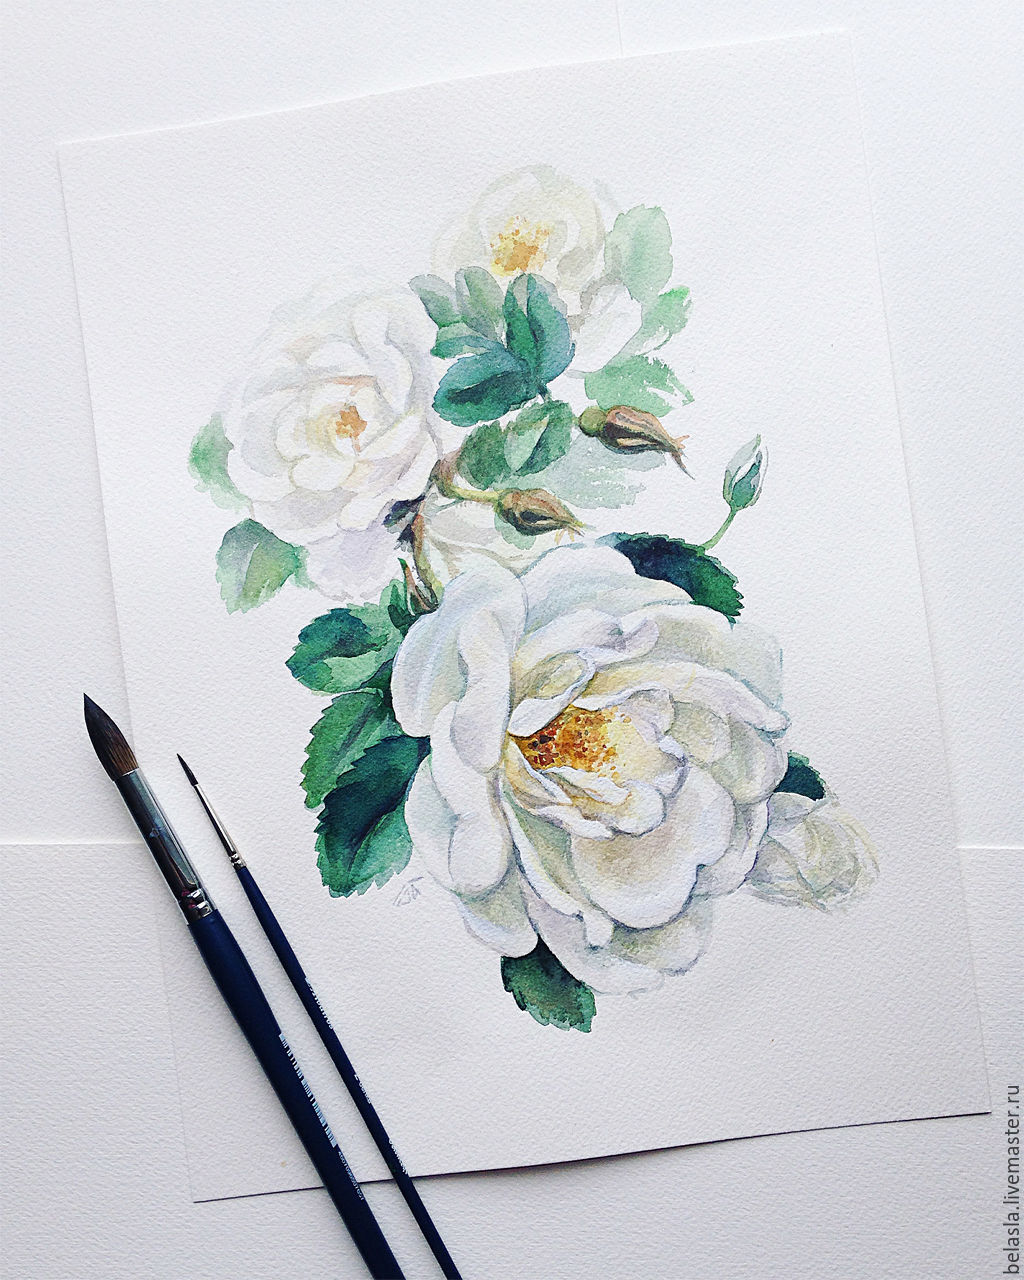 52140255cd62 1024x1280 White Rose, Watercolor Shop Online On Livemaster With Shipping